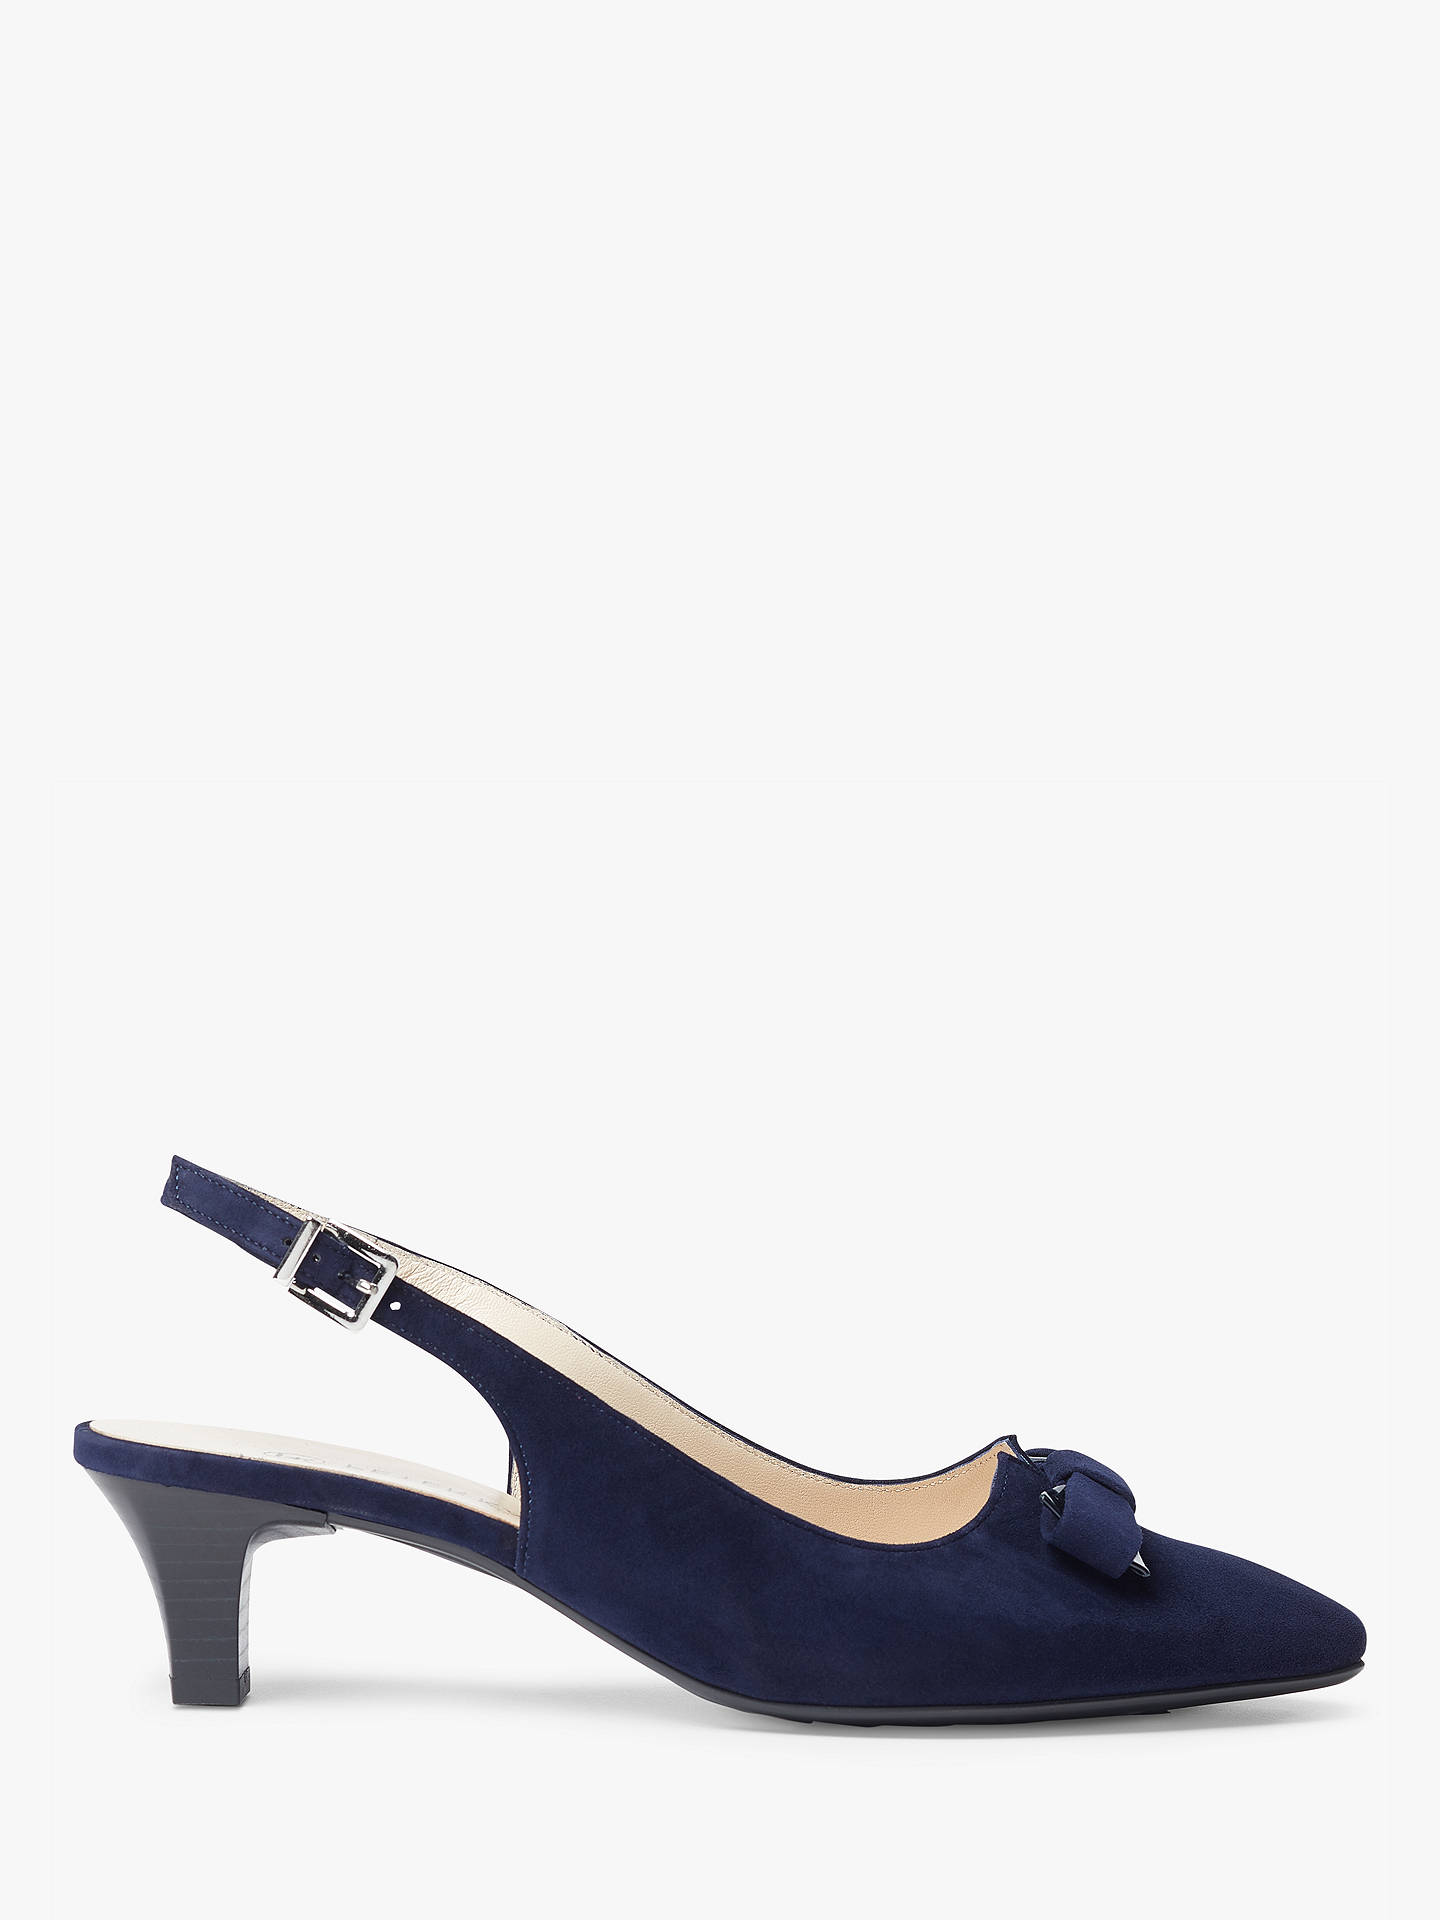 7d1a68158e0 Buy Peter Kaiser Sona Bow Cone Heel Slingback Court Shoes